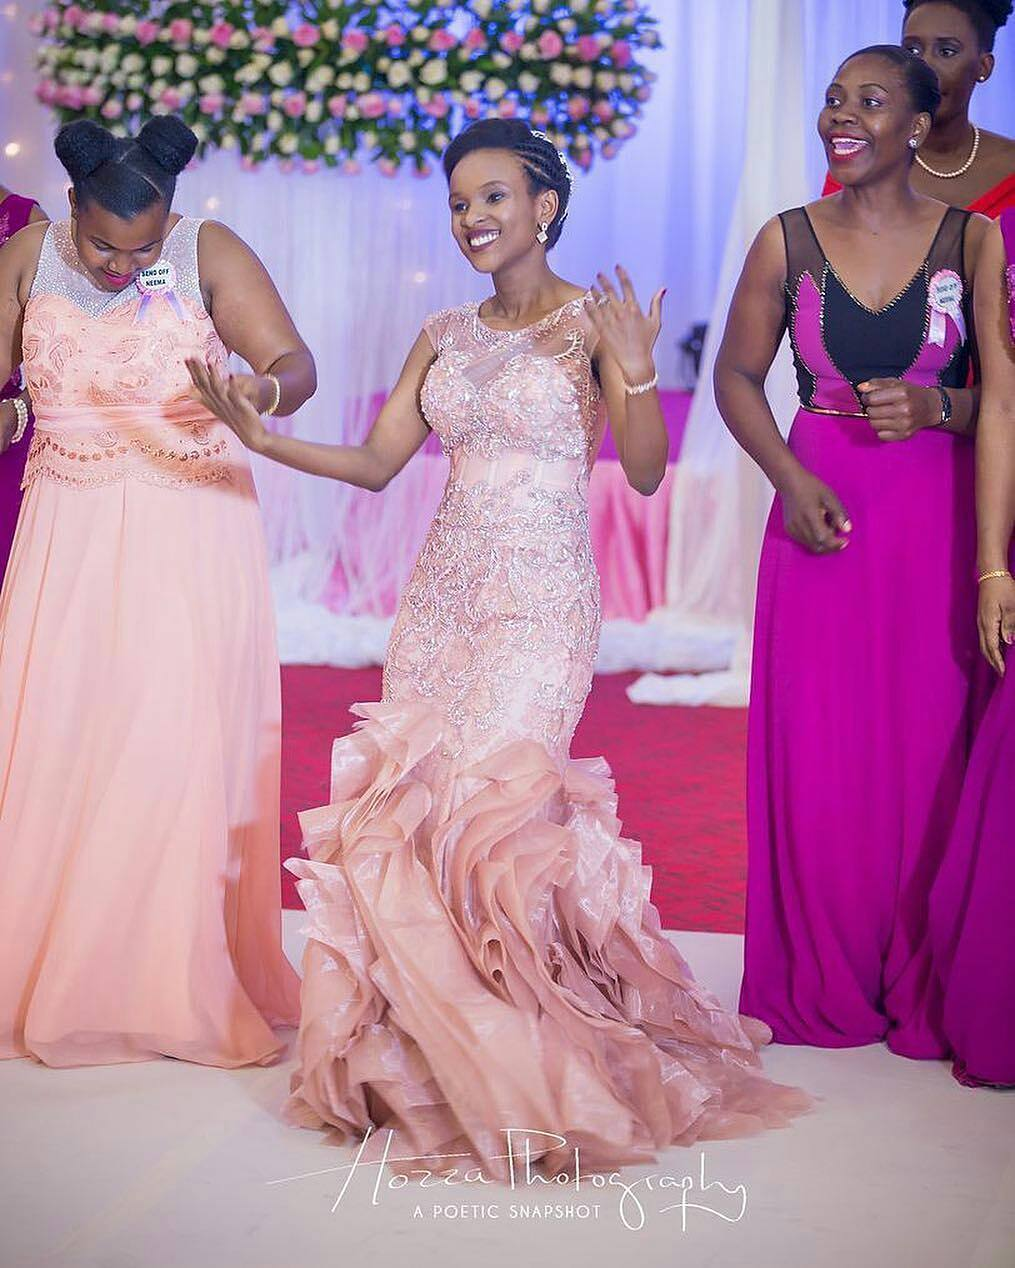 The Bride Gowns For Wedding Reception: Here Are The Sumptuous Reception Dresses We Adore